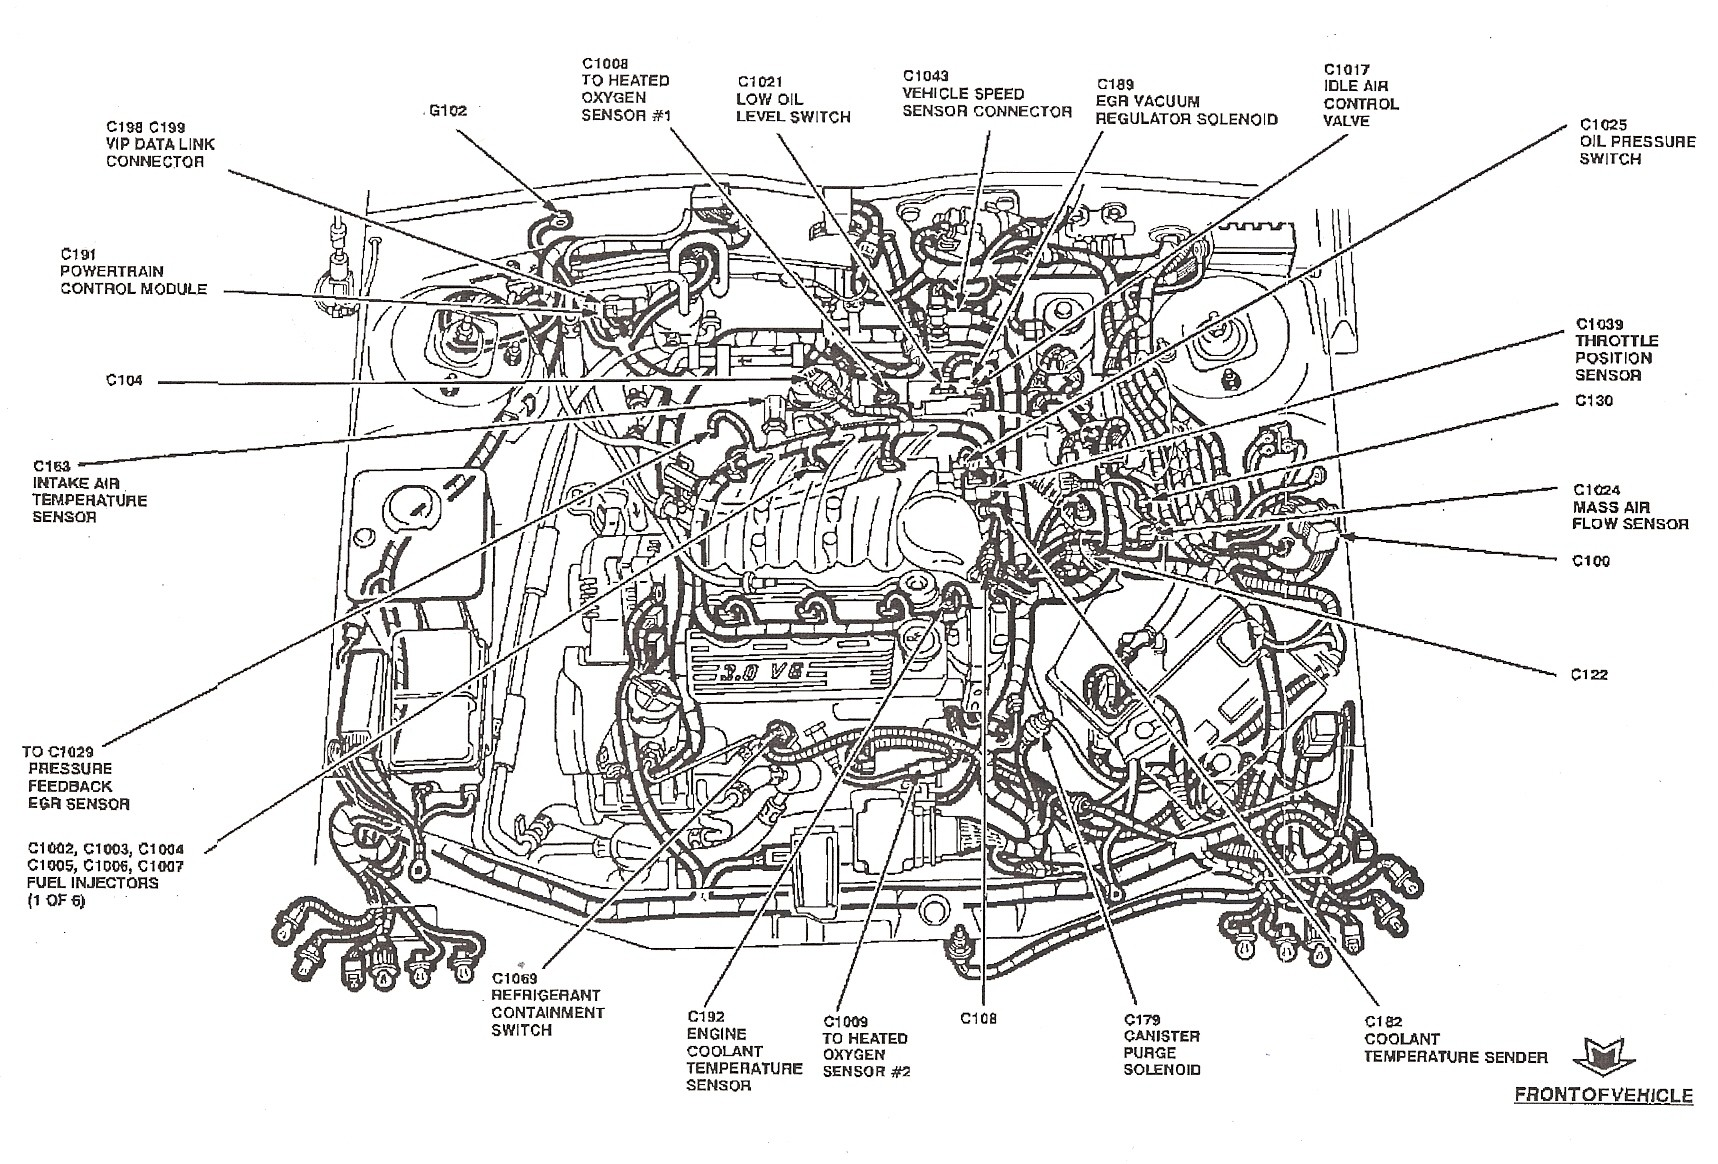 2002 ford focus se engine diagram 2007 ford focus fuse diagram rh  detoxicrecenze com 2000 Ford Focus 2.0 Engine Ford 2.0 Timing Belt Diagram